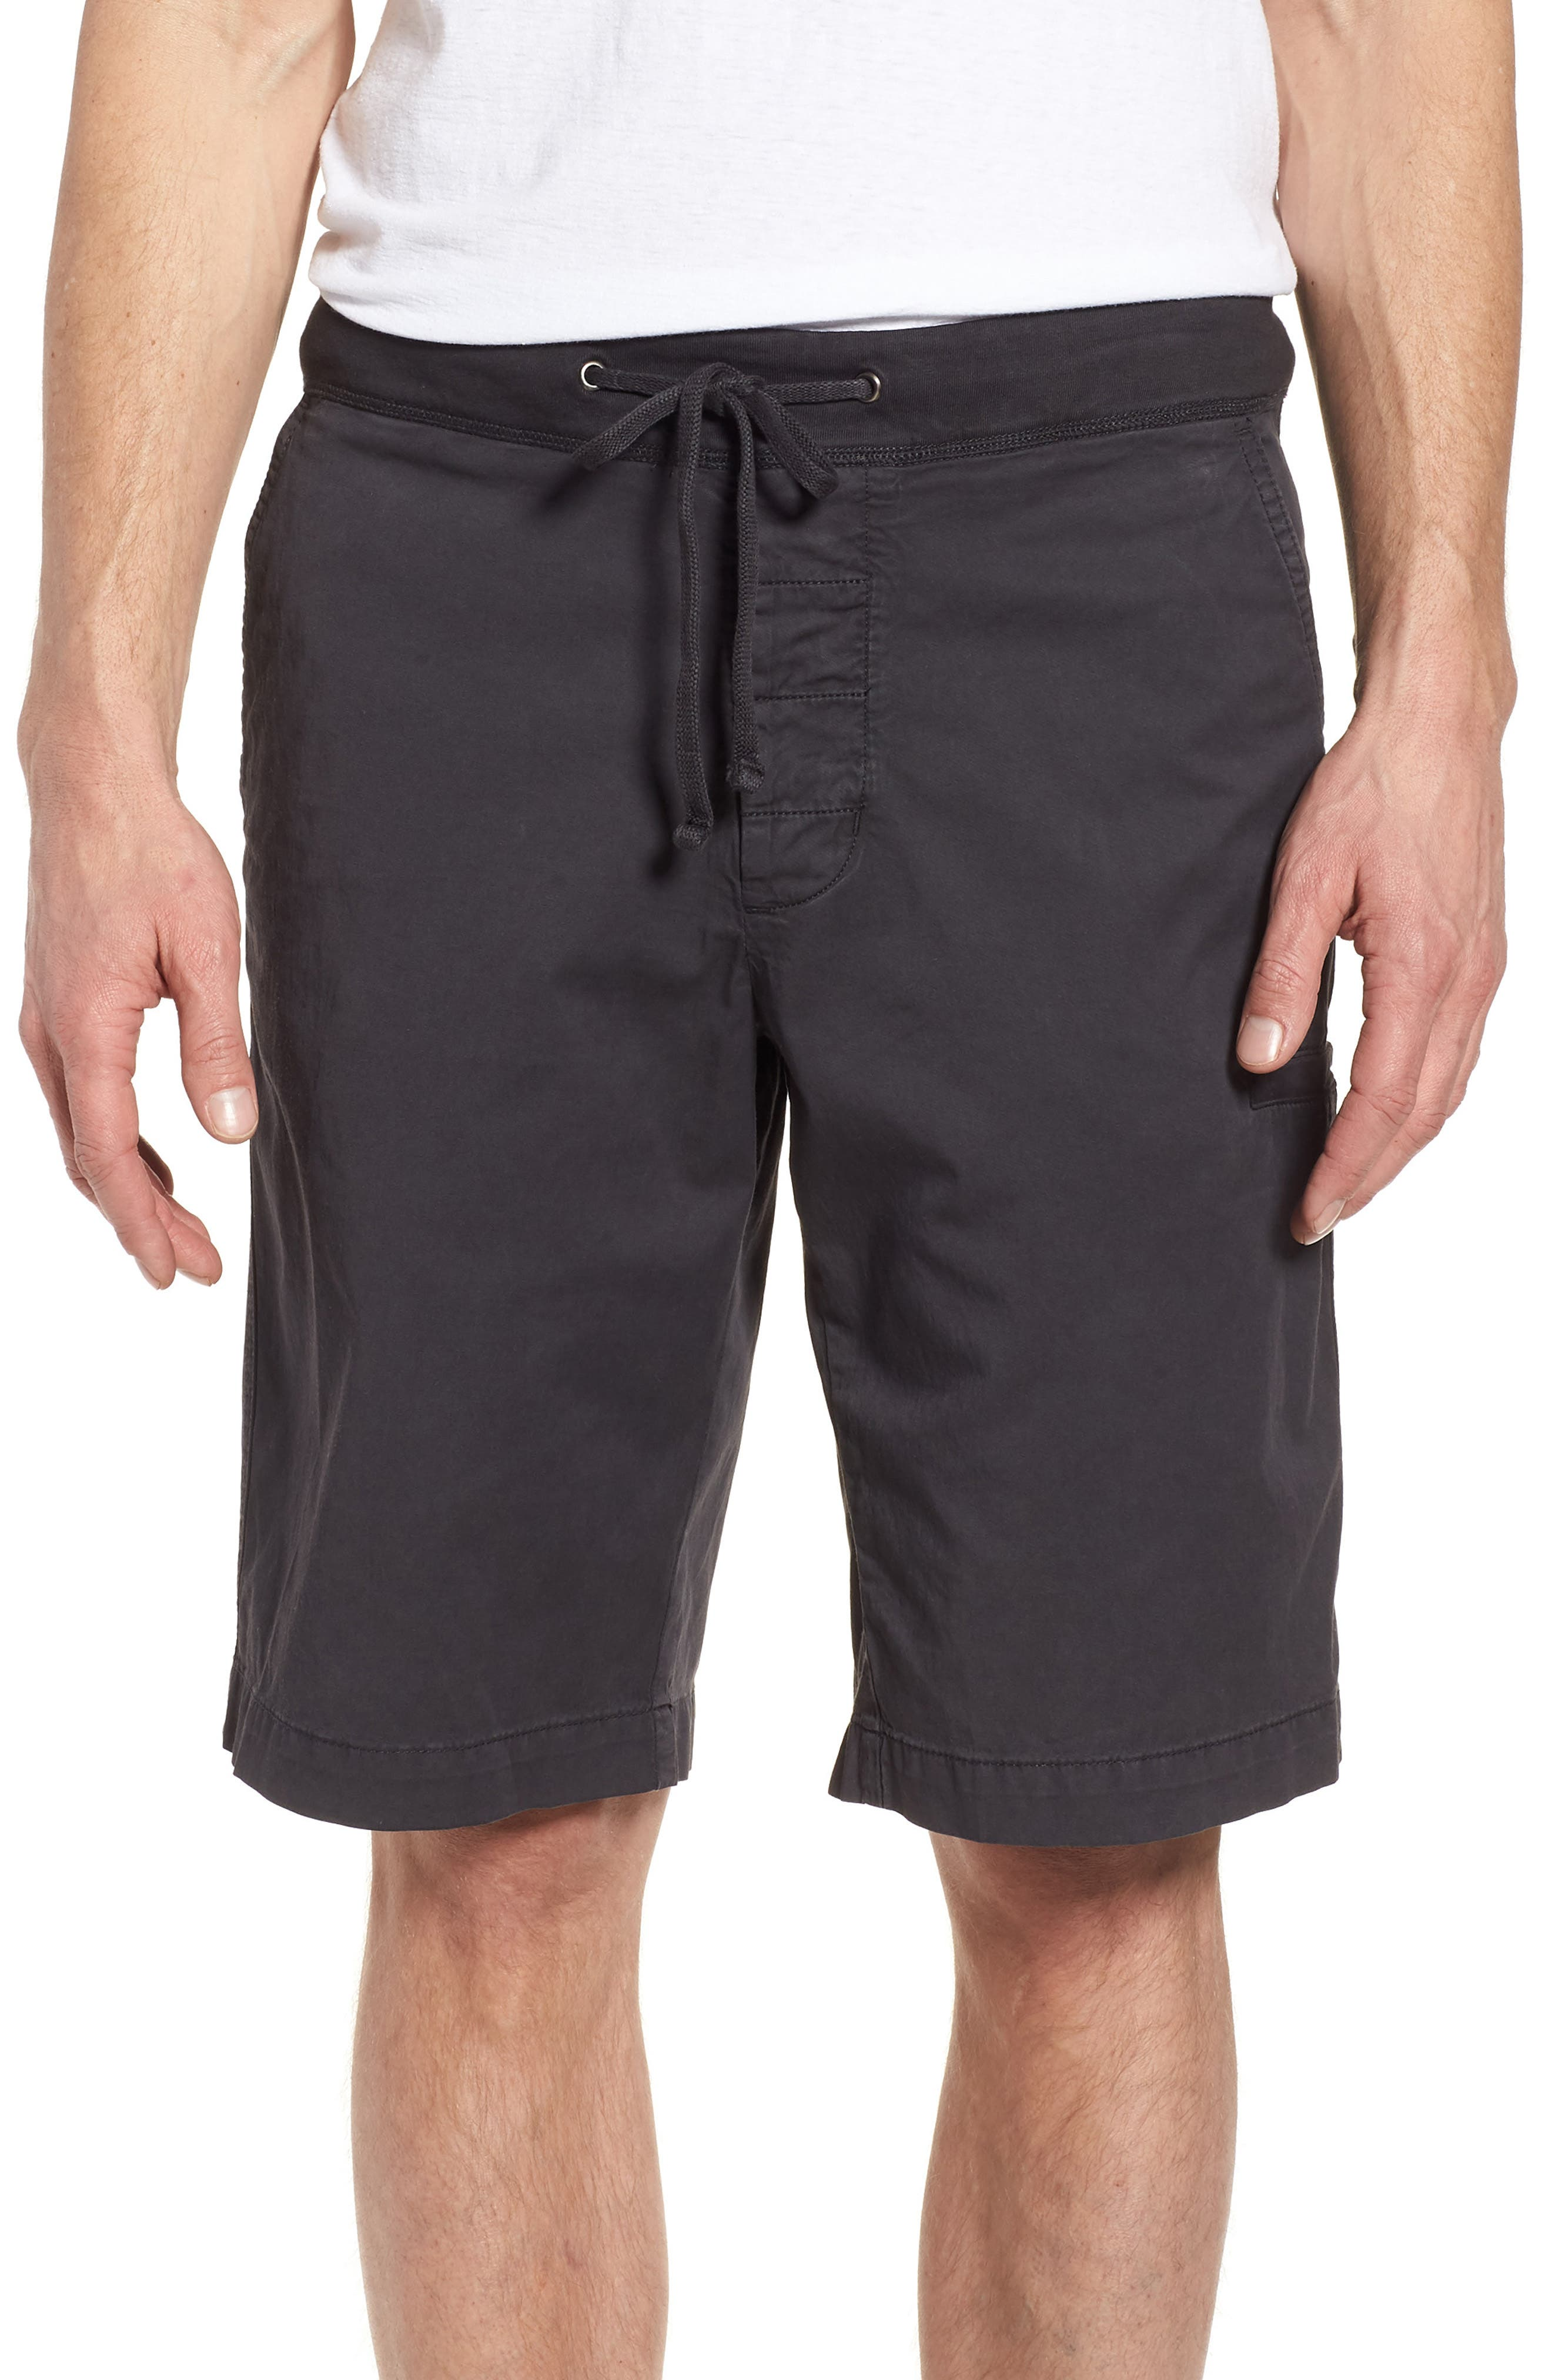 Surplus Relaxed Fit Shorts,                             Main thumbnail 1, color,                             023